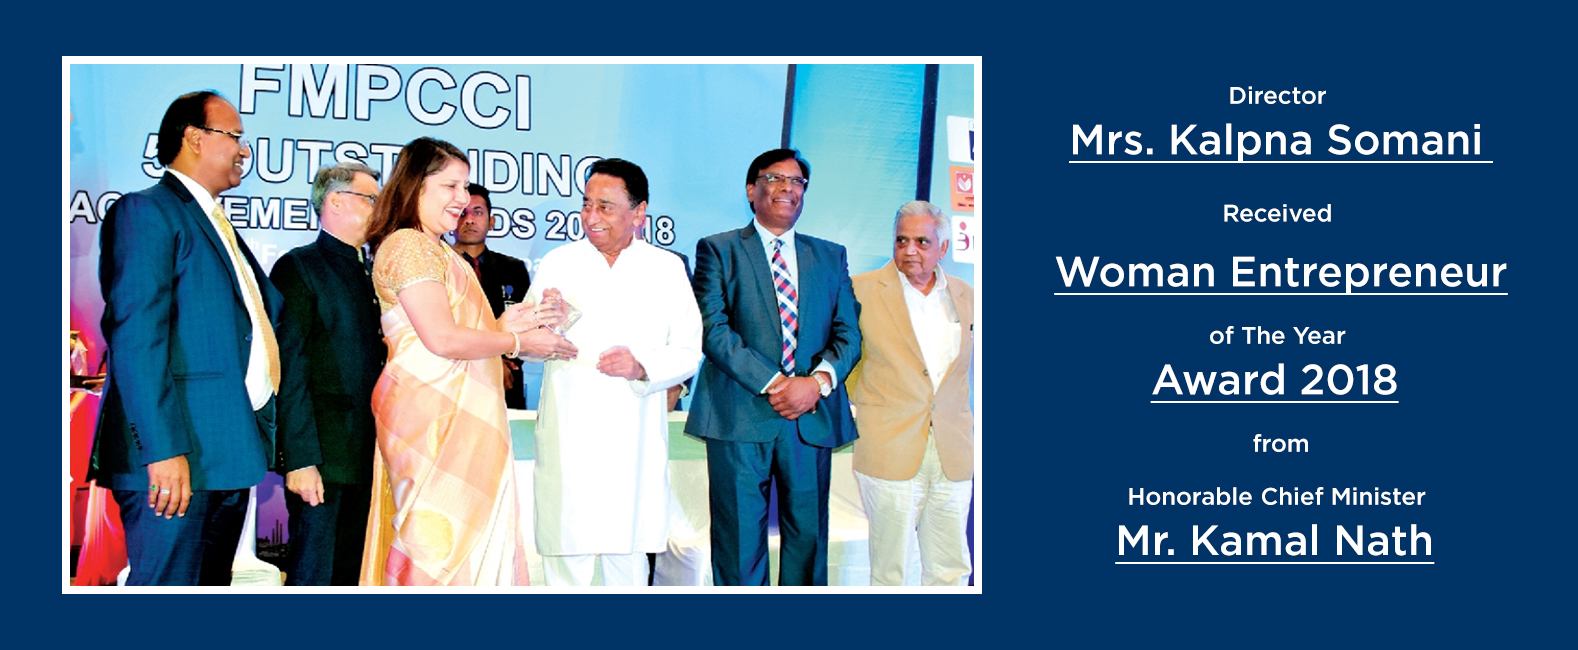 FMPCCI Woman Entrepreneur of The Year Award 2018